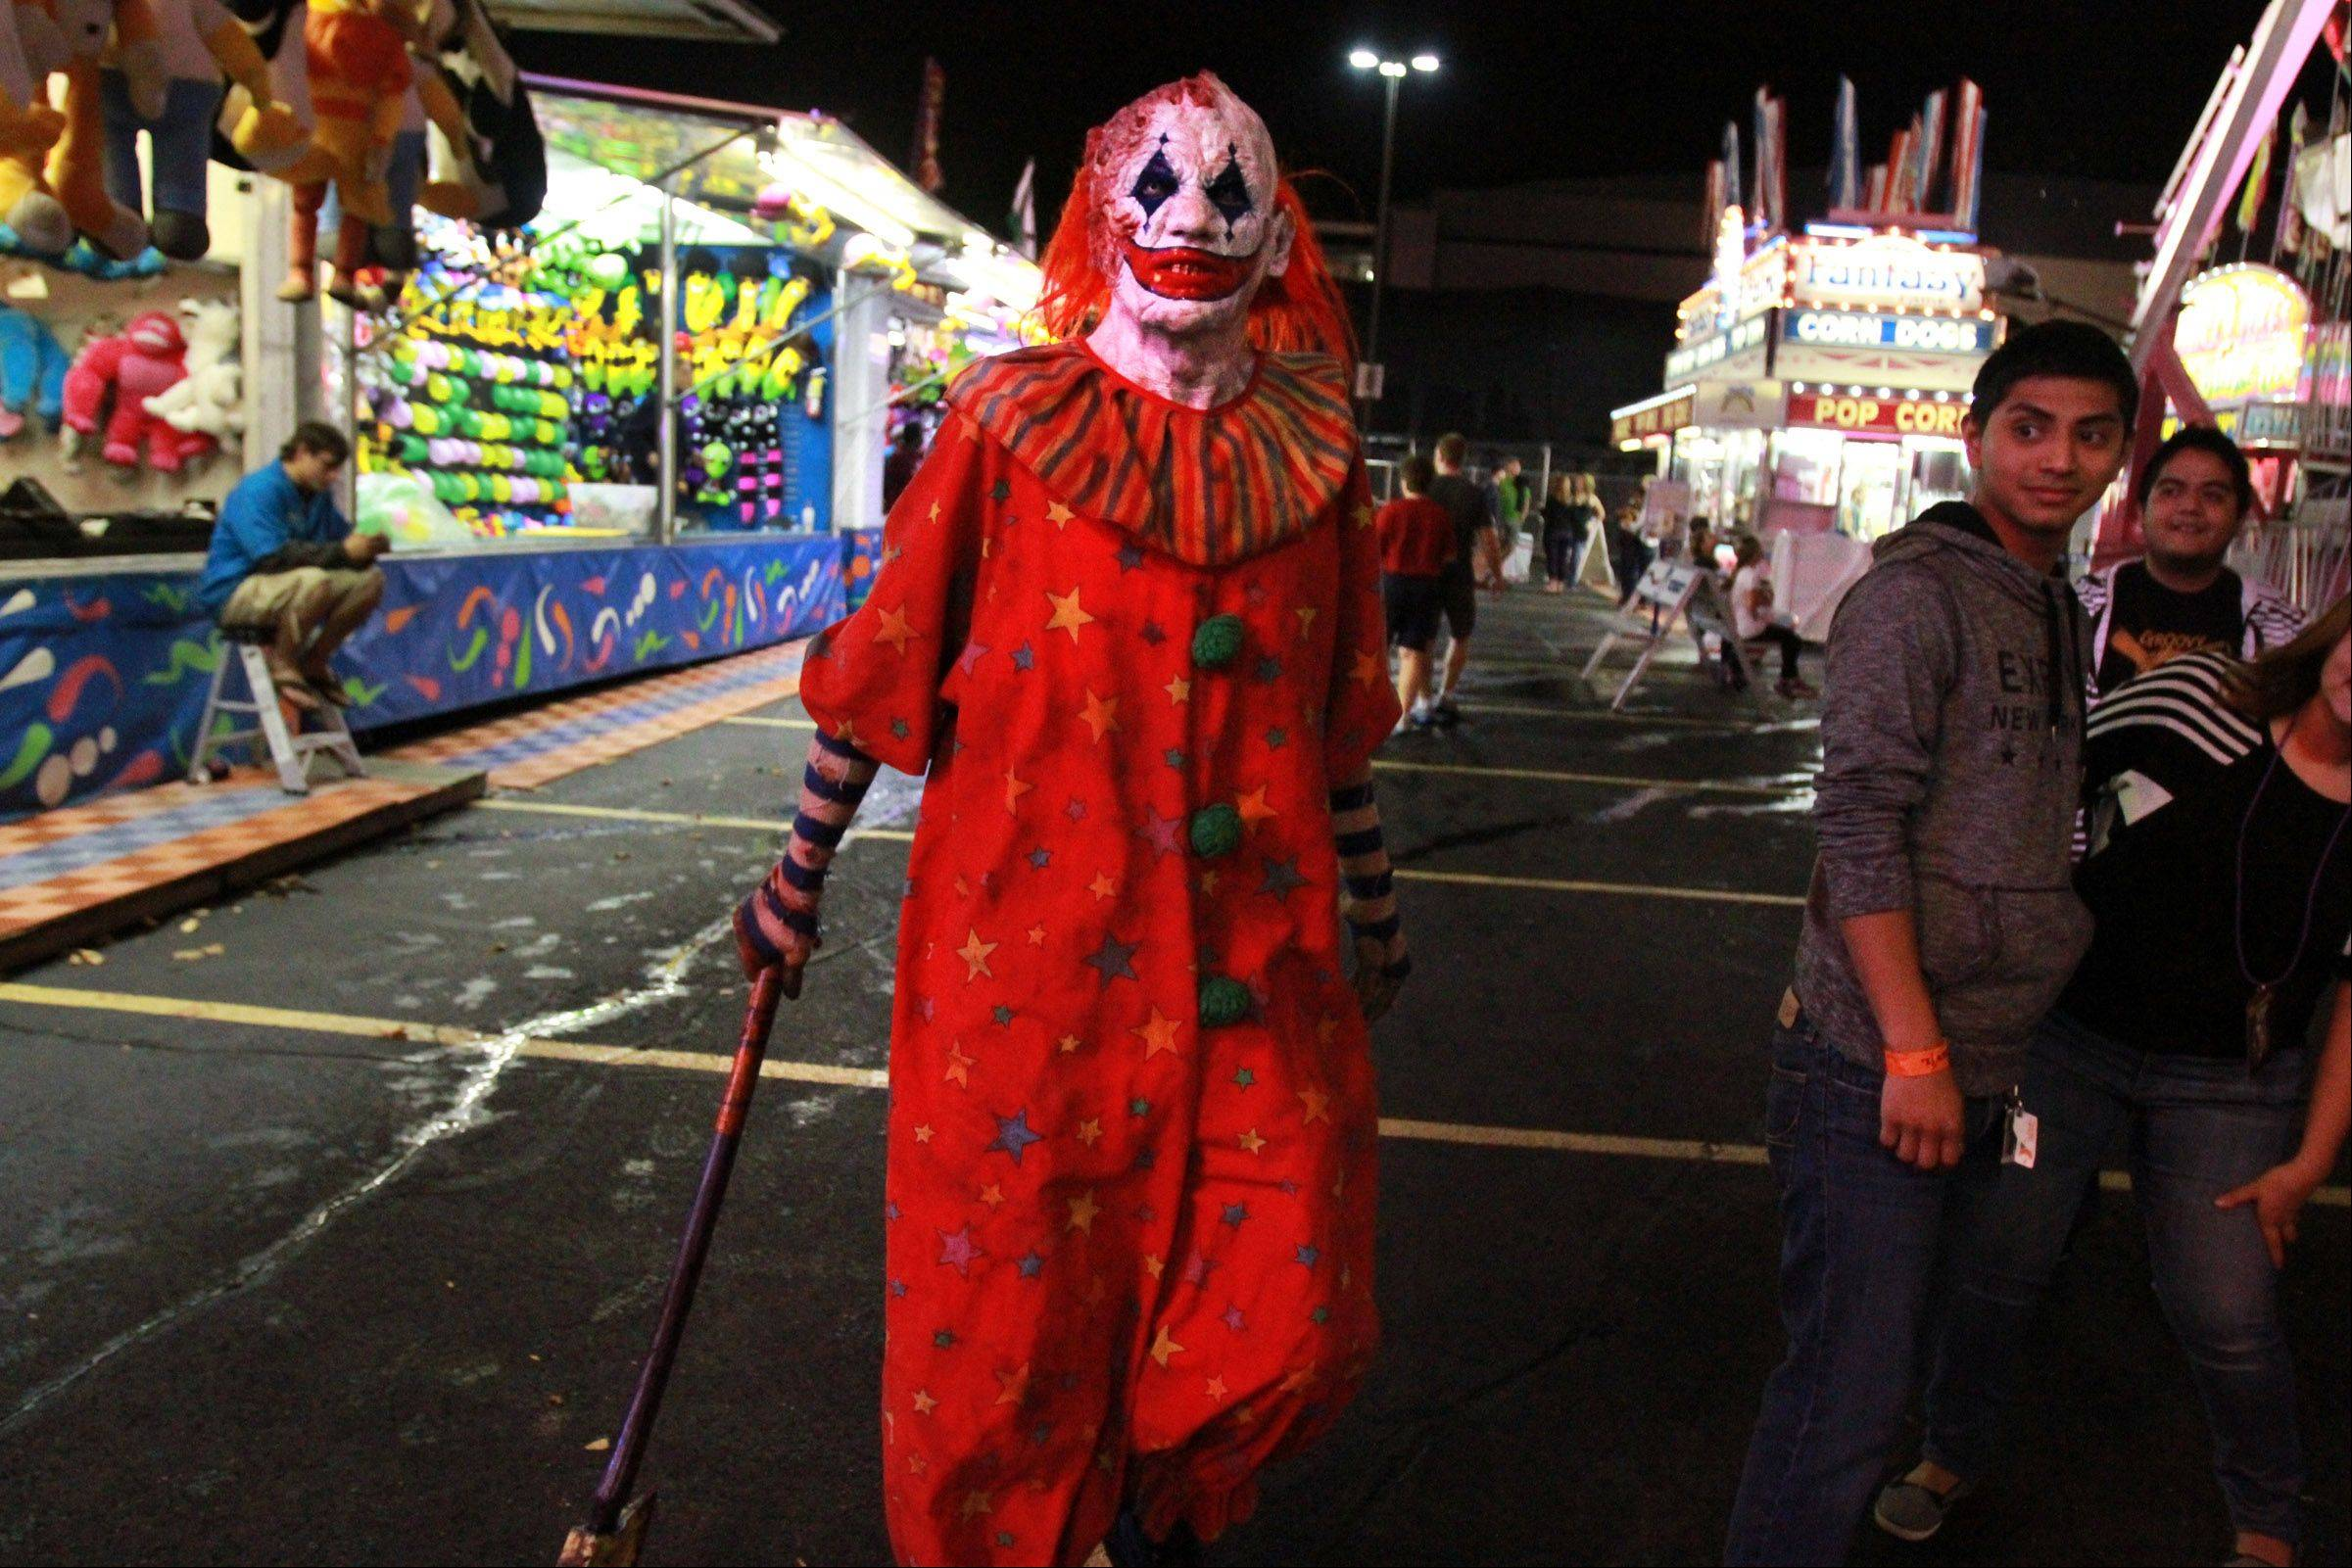 CarnEvil (James Caraway) haunts the grounds of the haunted attraction that bears his name at Sears Centre in Hoffman Estates.